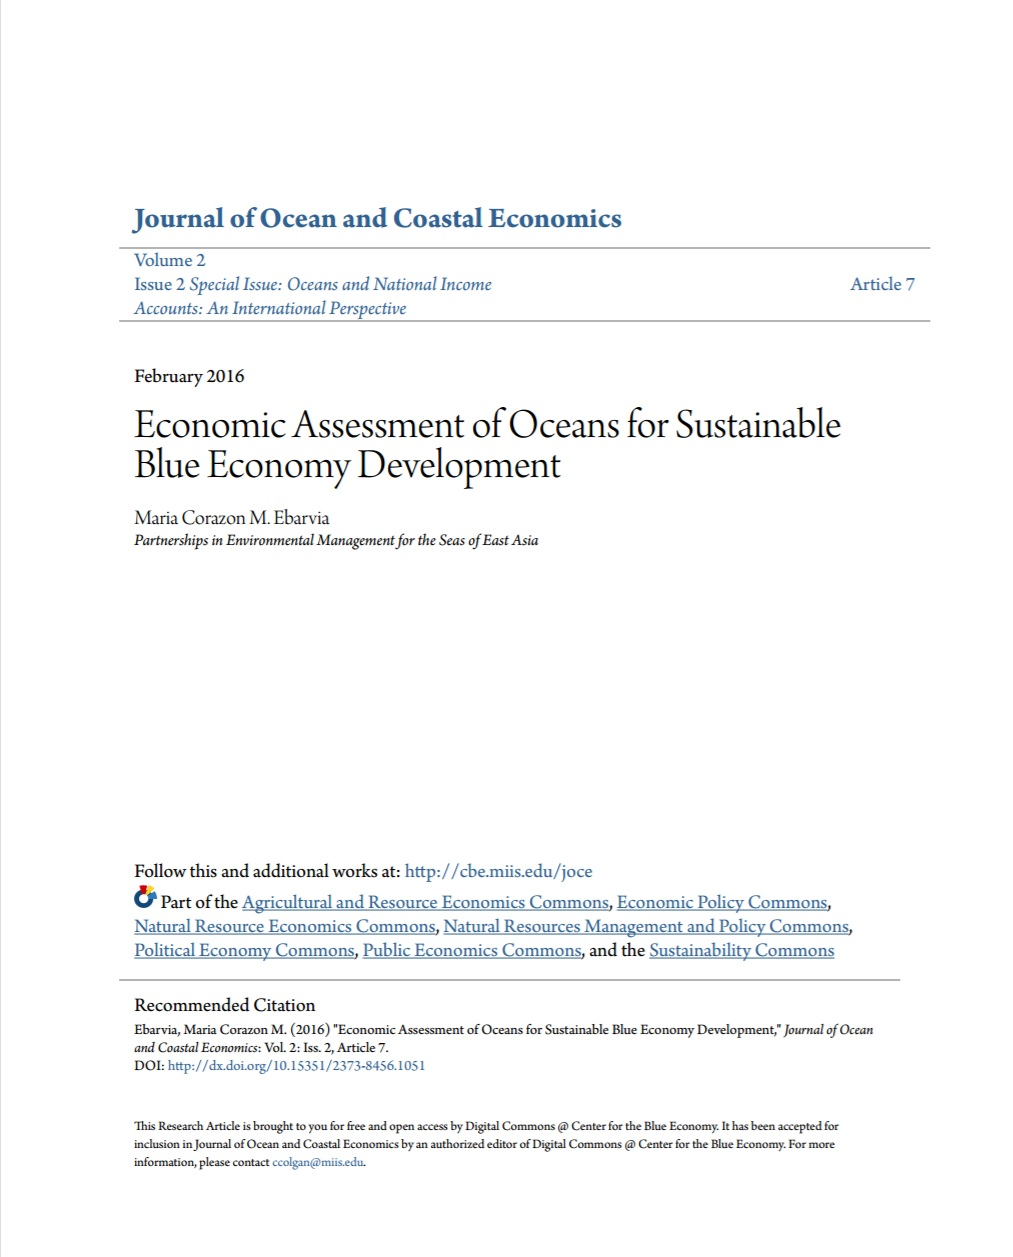 Economic Assessment of Oceans for Sustainable Blue Economy